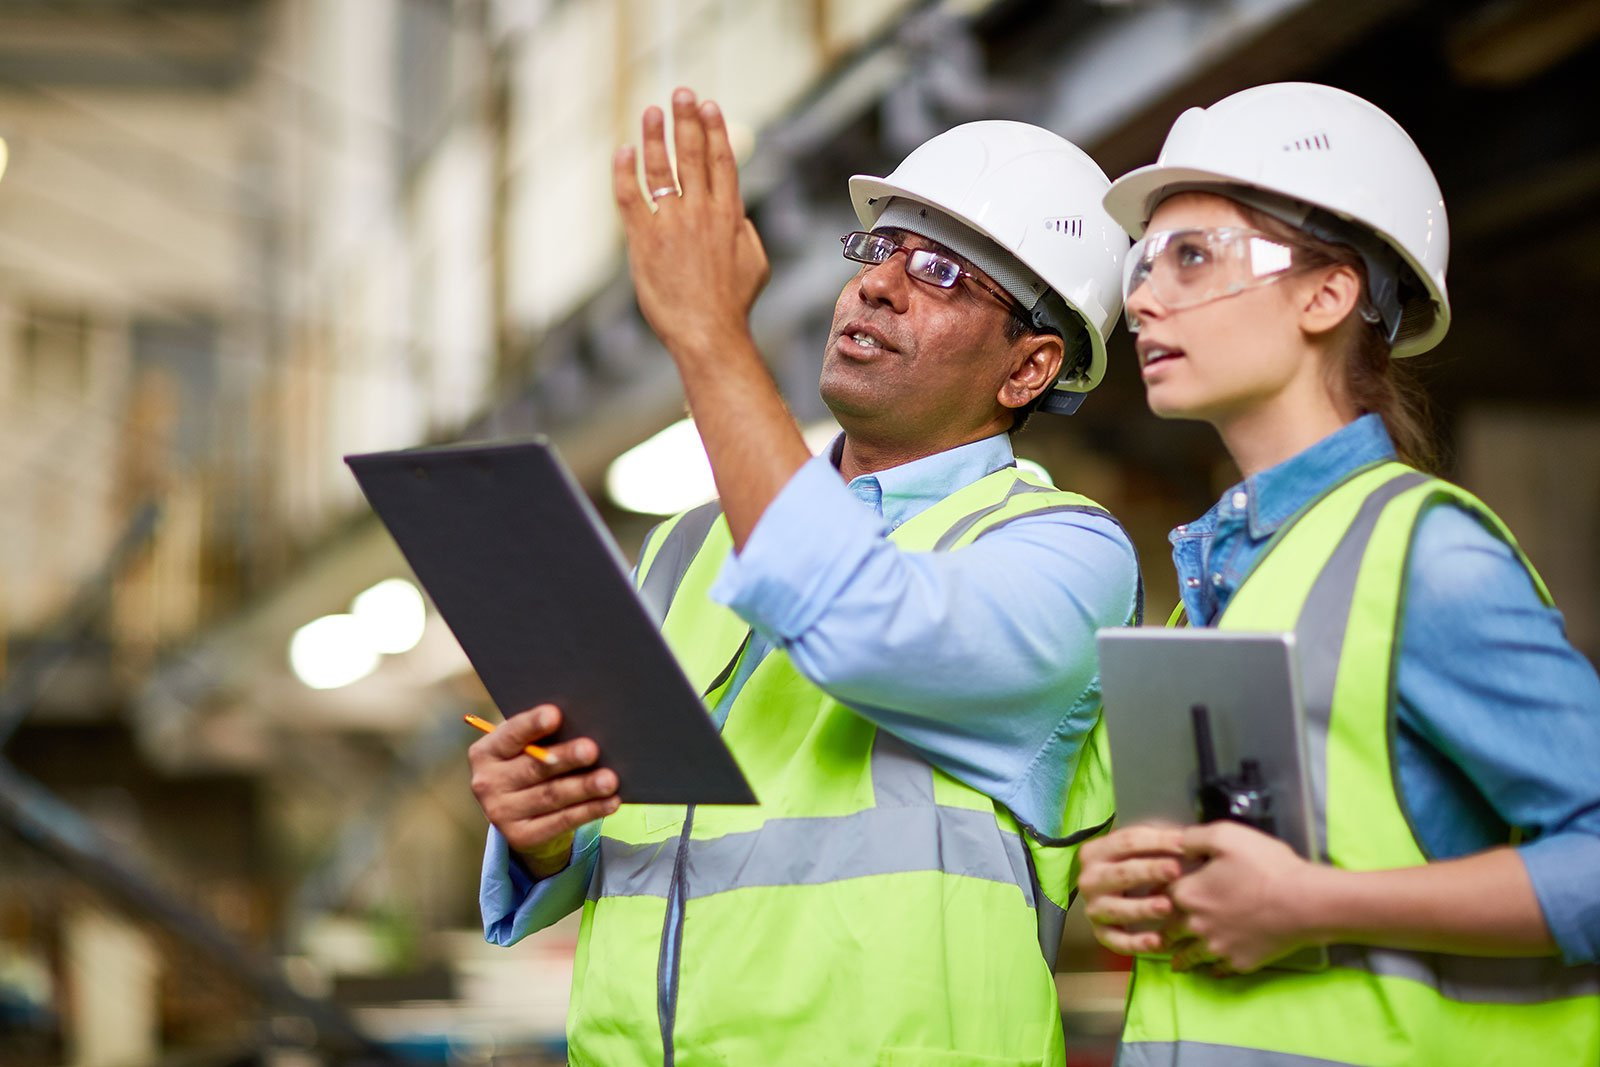 workers-warehouse-devices.jpg